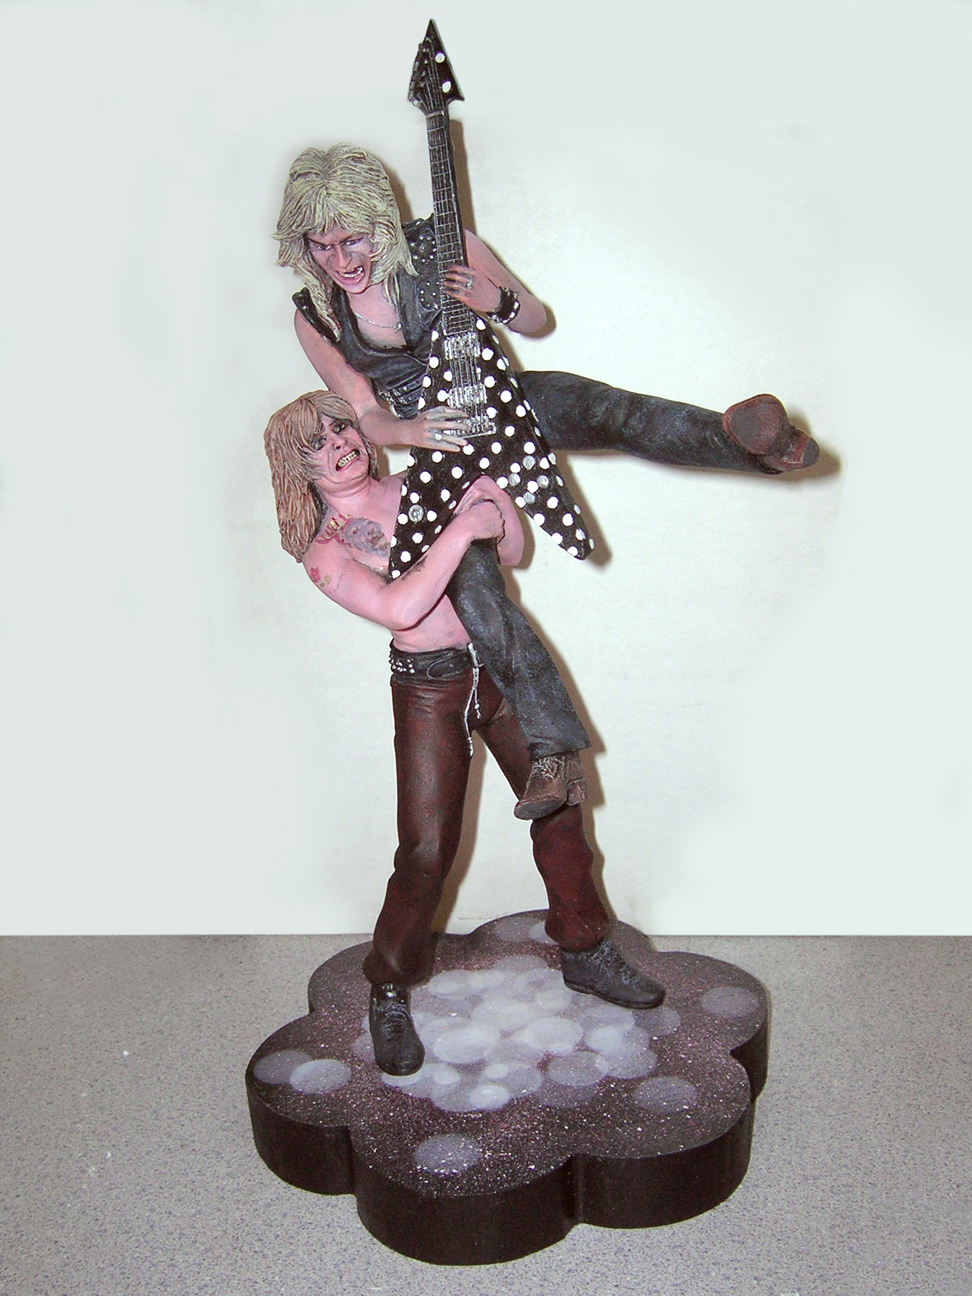 Ozzy Osborne & Randy Rhoads Tribute 1/8 Scale Model Kit